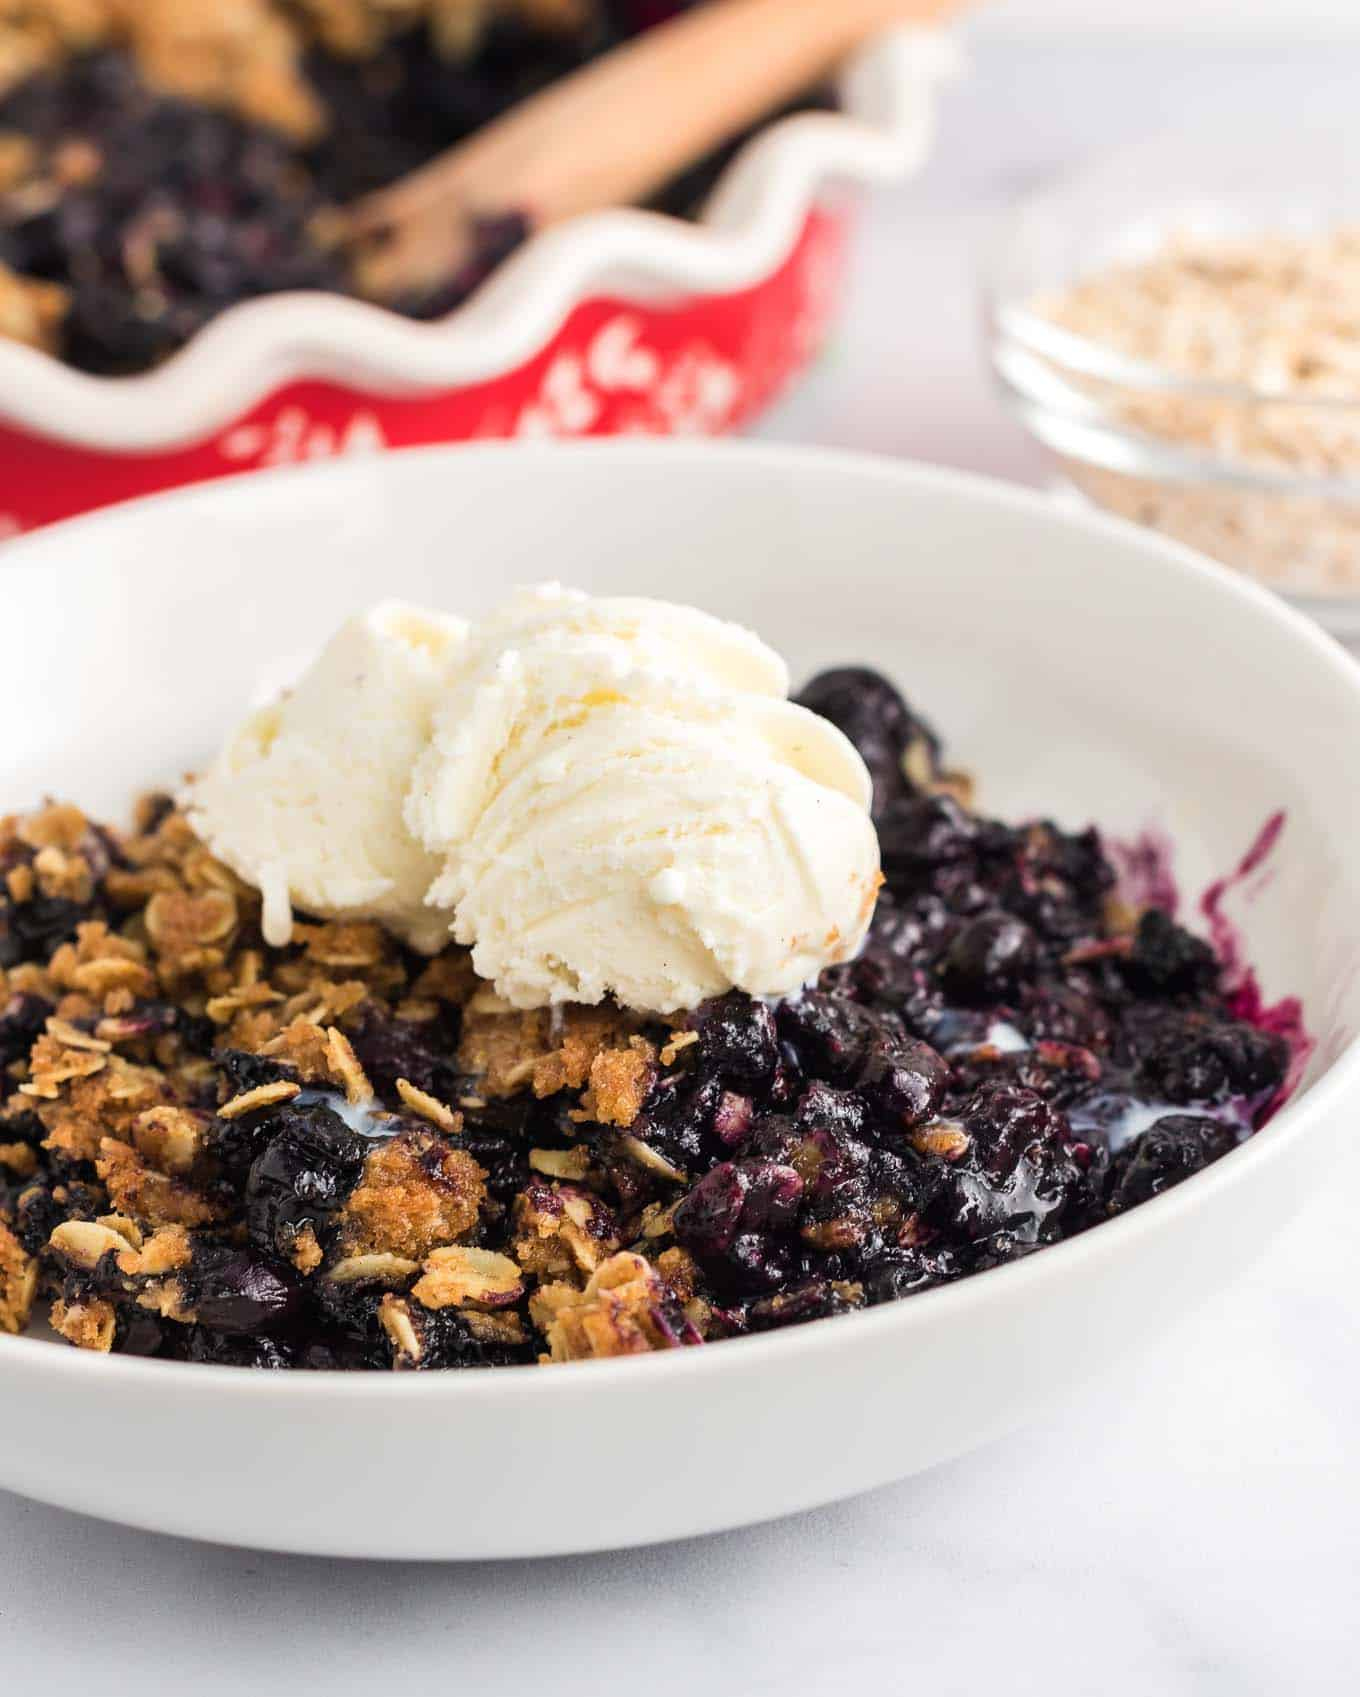 blueberry crisp in a white bowl with two scoops of ice cream on top